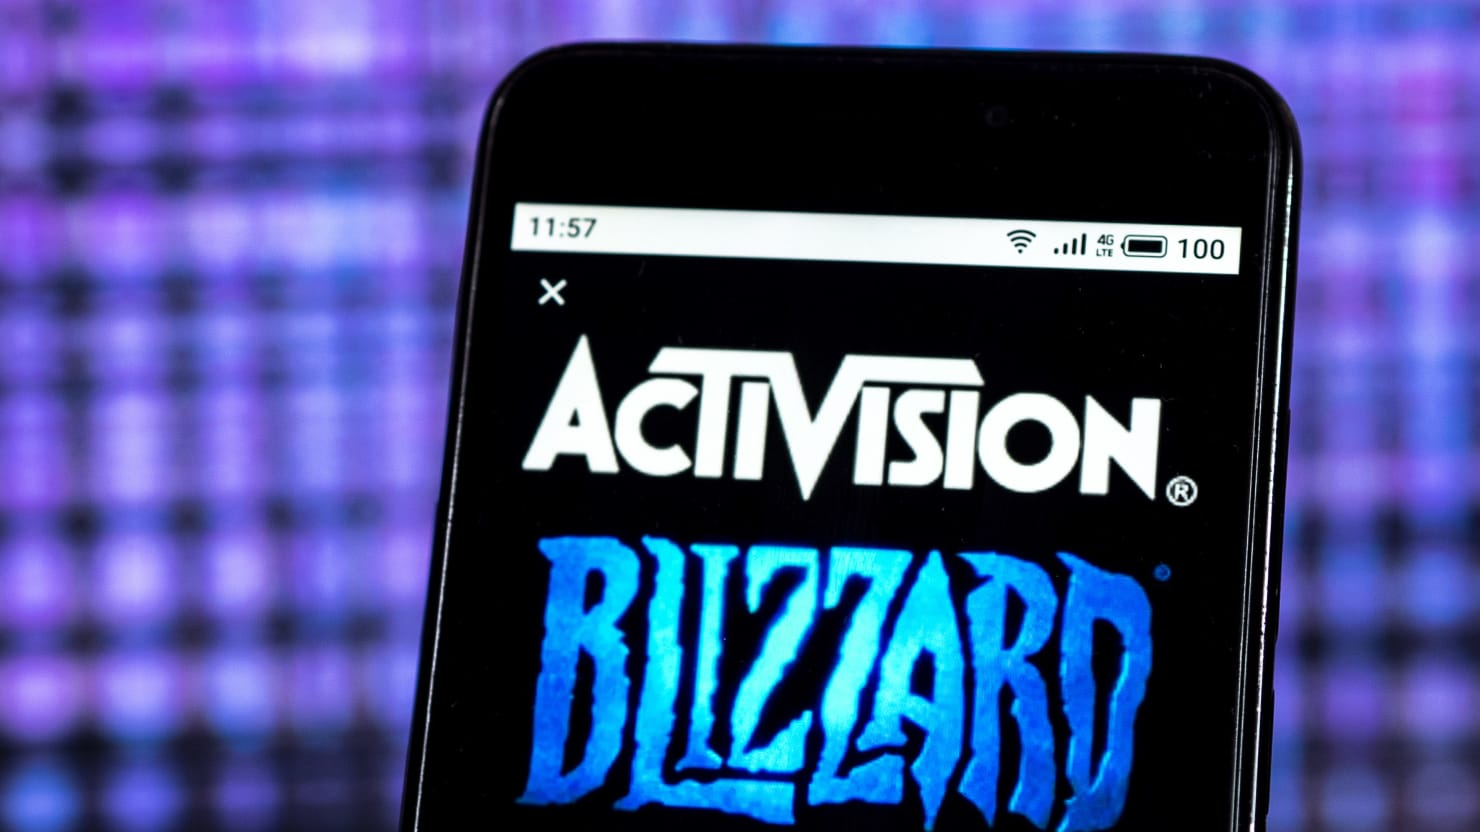 Blizzard Employees Staged a Walkout After the Company Banned a Gamer for Pro-Hong Kong Views